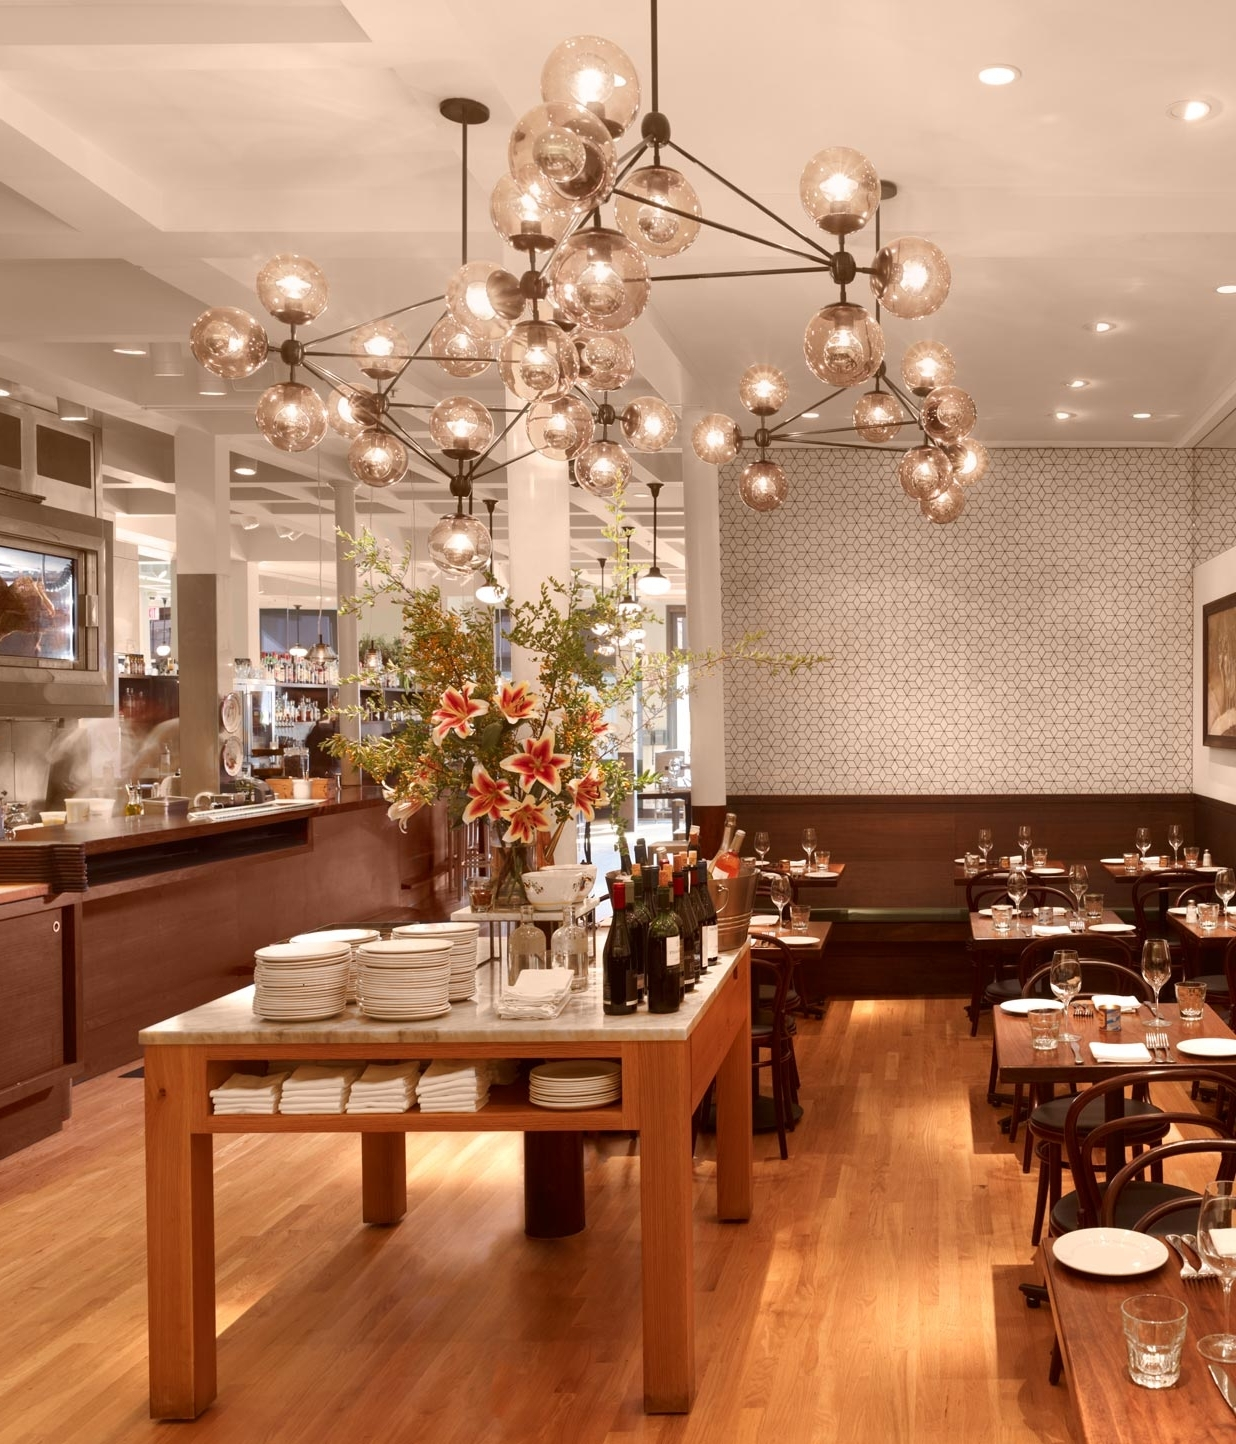 Cafes, Restaurants And Intended For Restaurant Chandeliers (View 19 of 20)